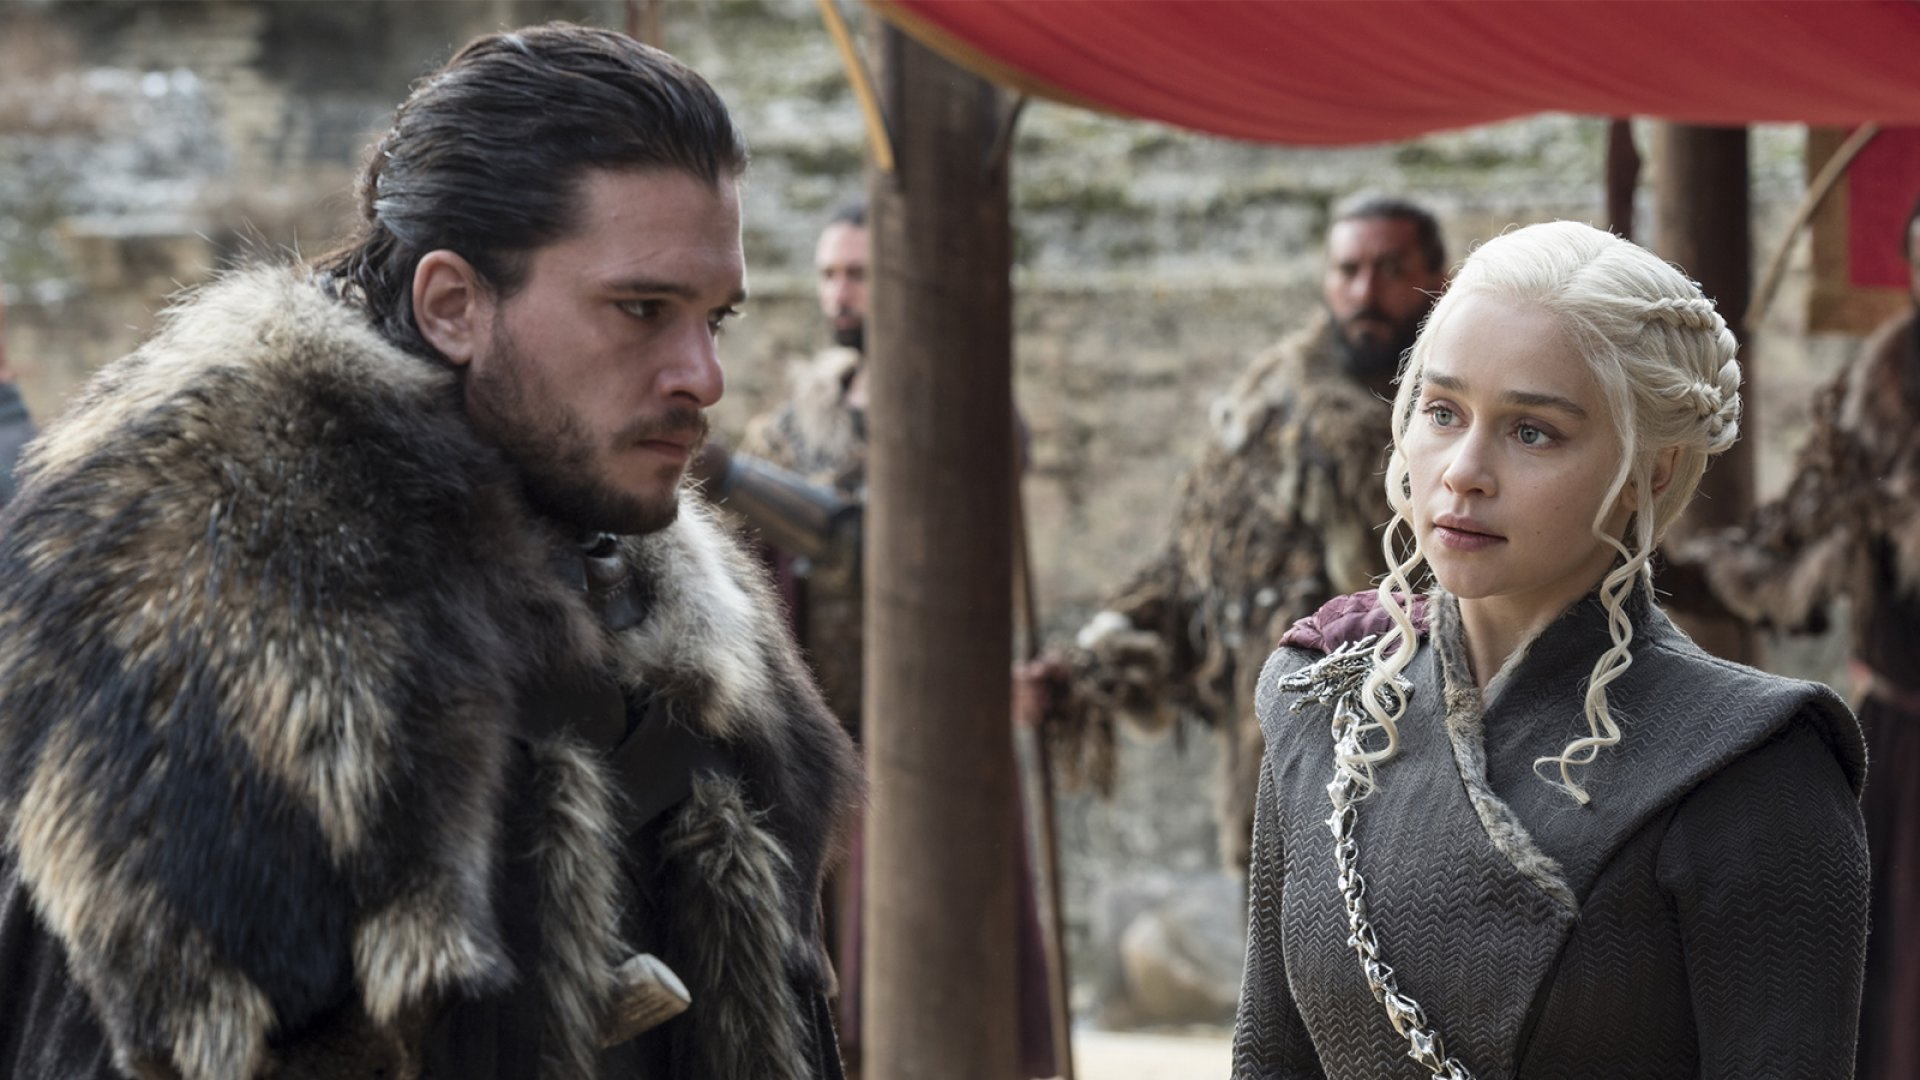 What's really going down between these two Game of Thrones characters? The website Fan Fest lets fans opine.